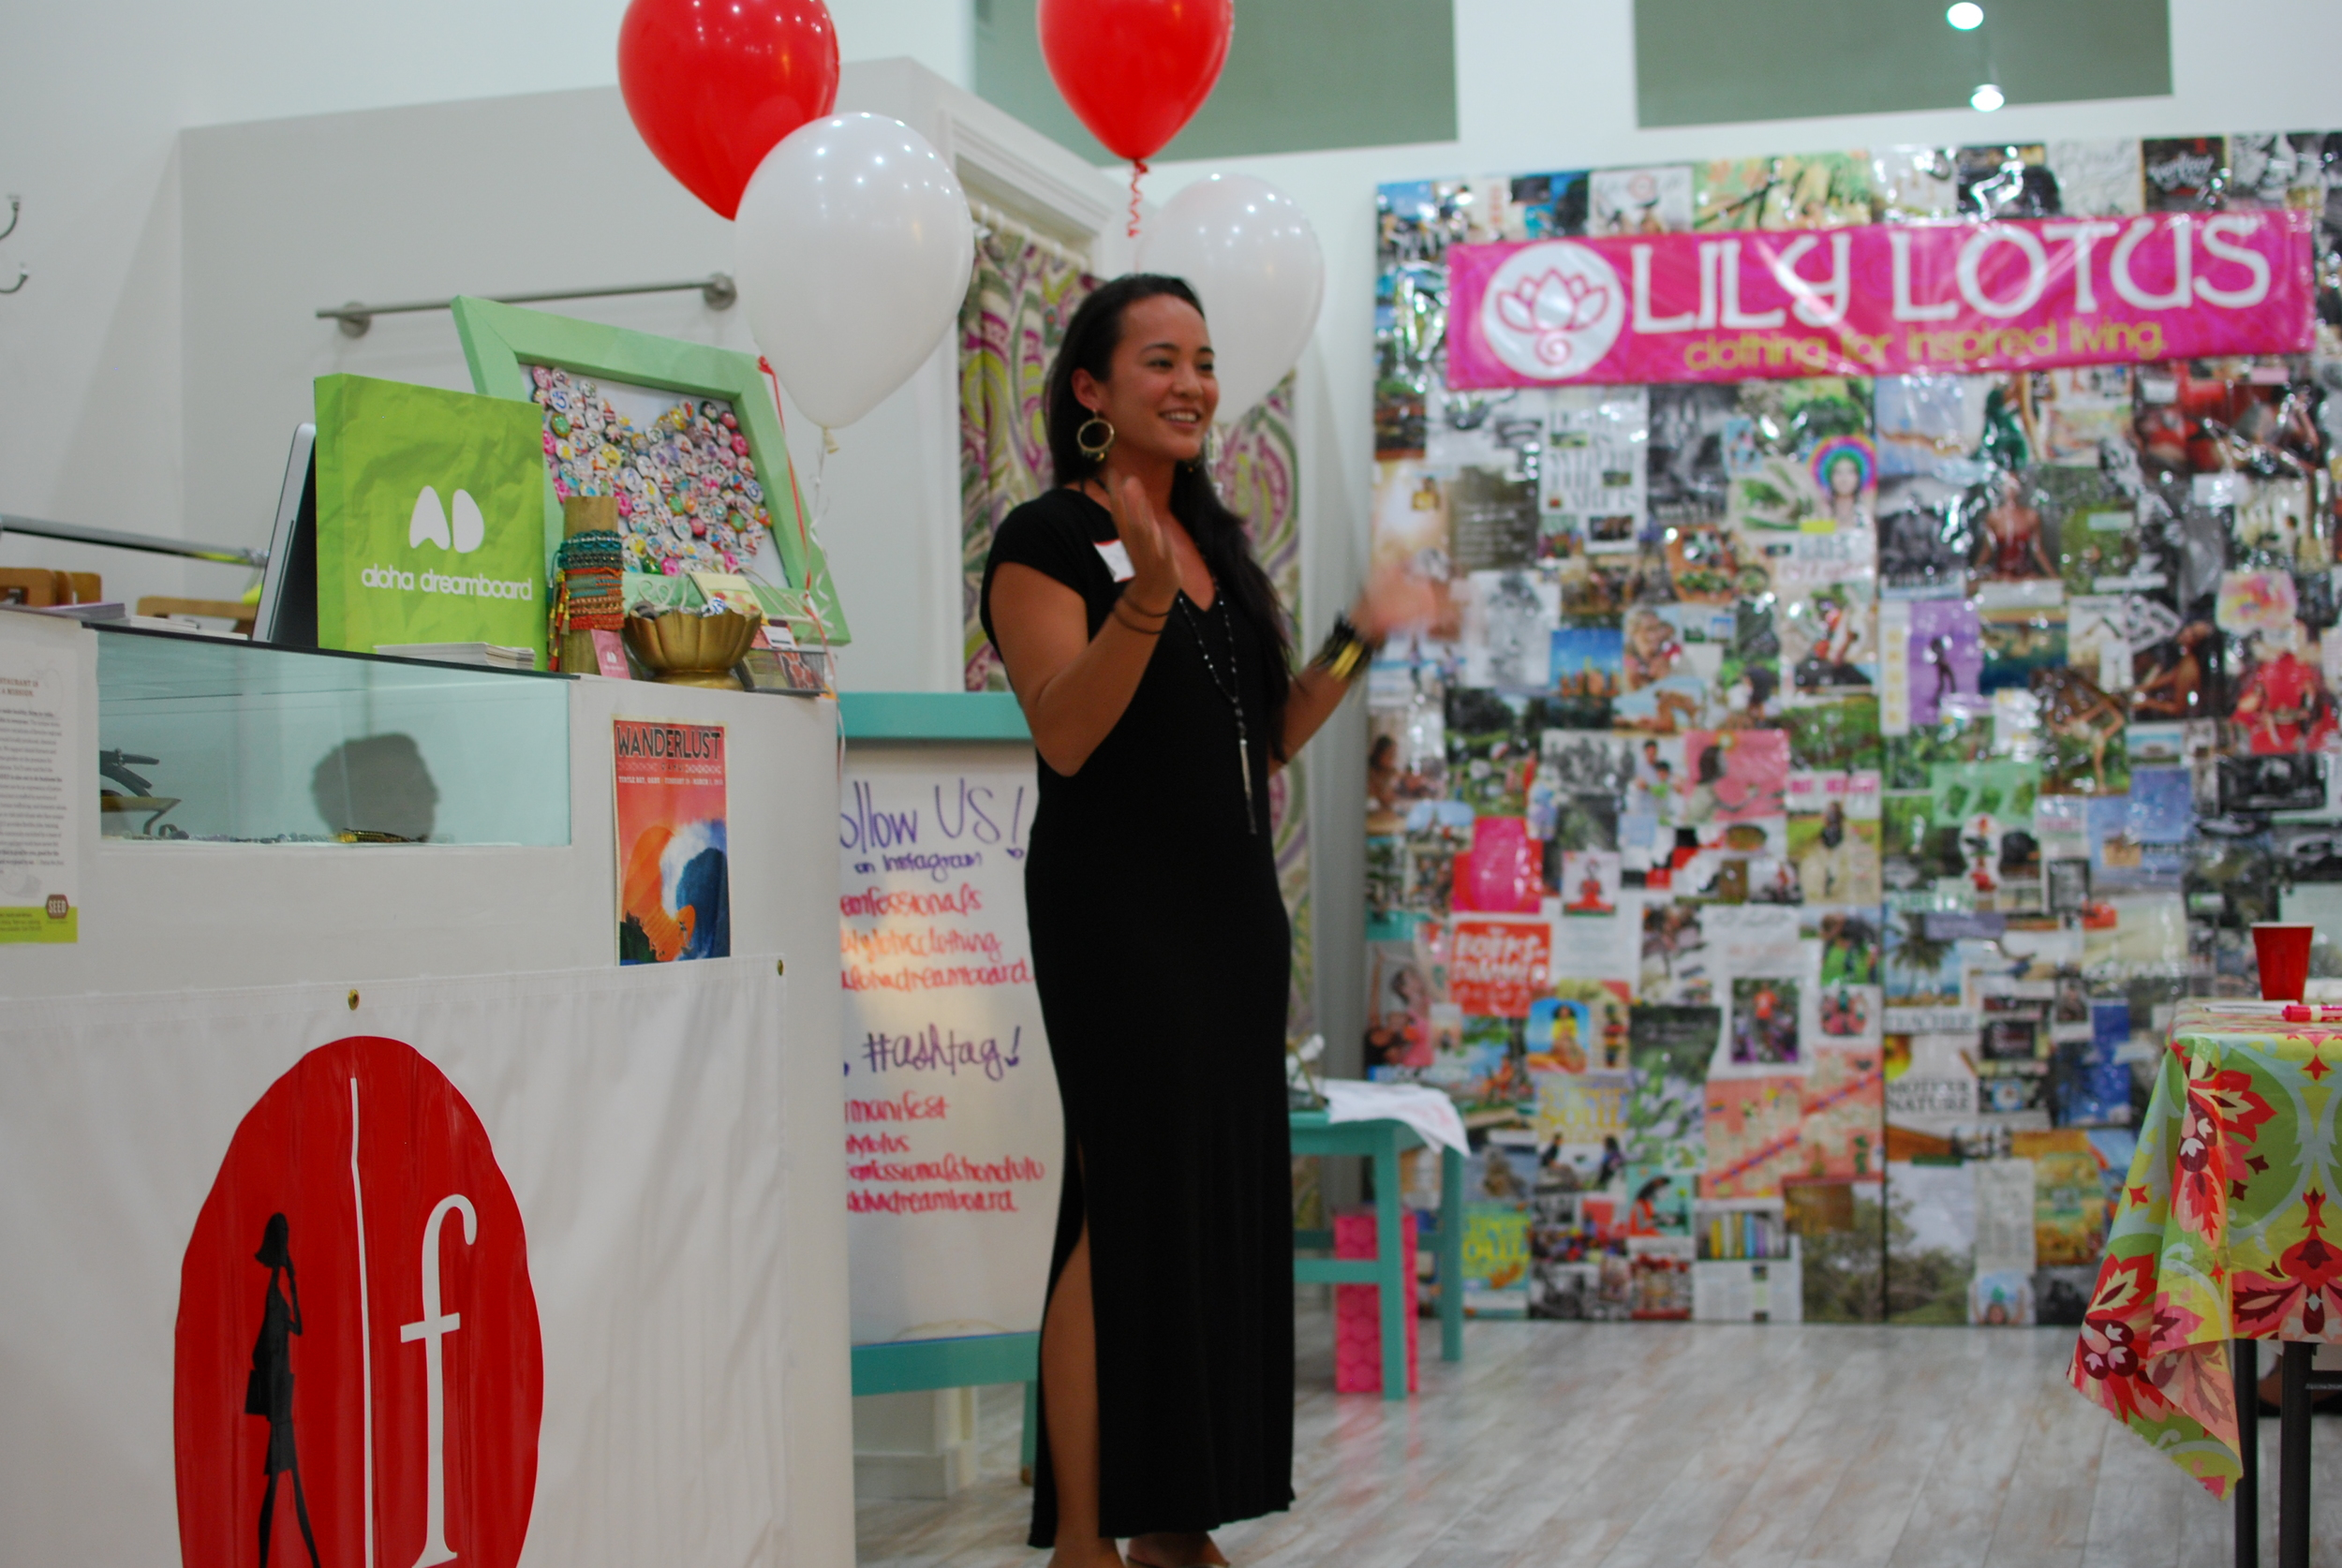 Owner of Lily Lotus, Momi Chee, shares her story to the women of Femfessionals in Honolulu -Photo Courtesy Nicole Kato